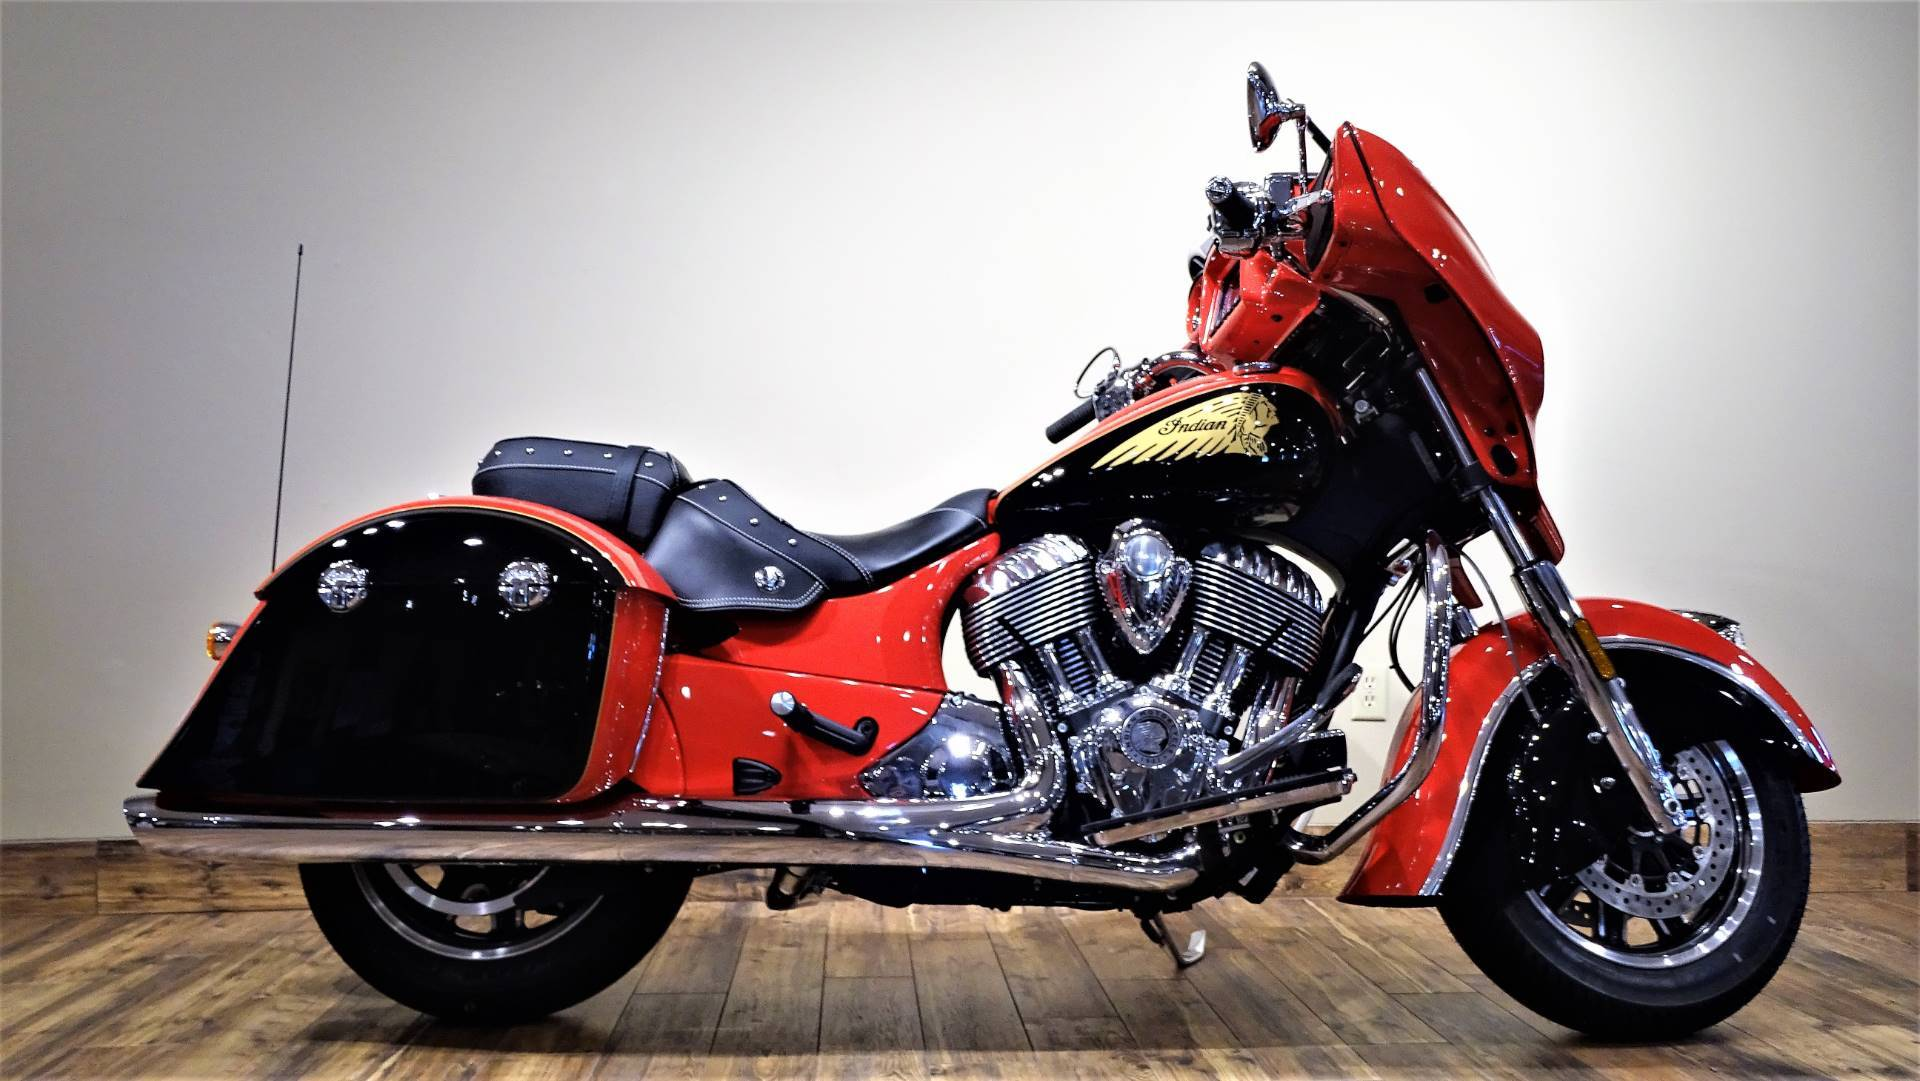 2017 Indian Chieftain 1